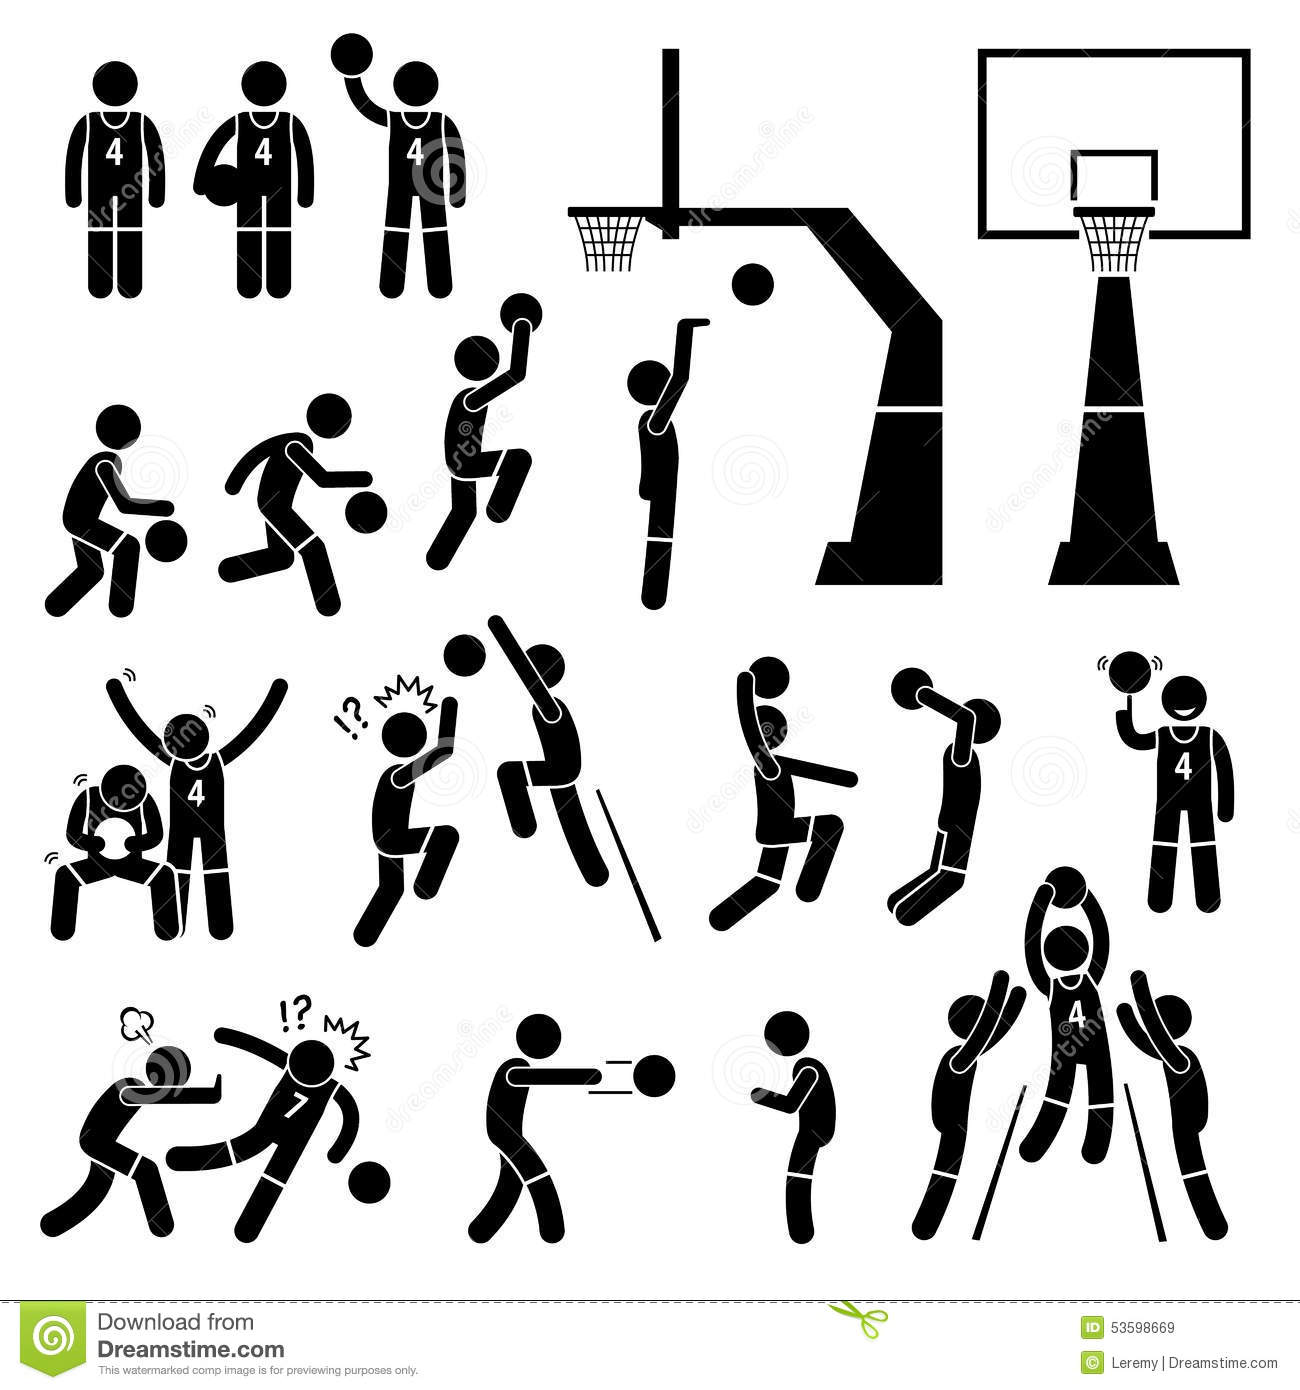 Basketball Player Action Poses Cliparts Stock Vector - Image: 53598669